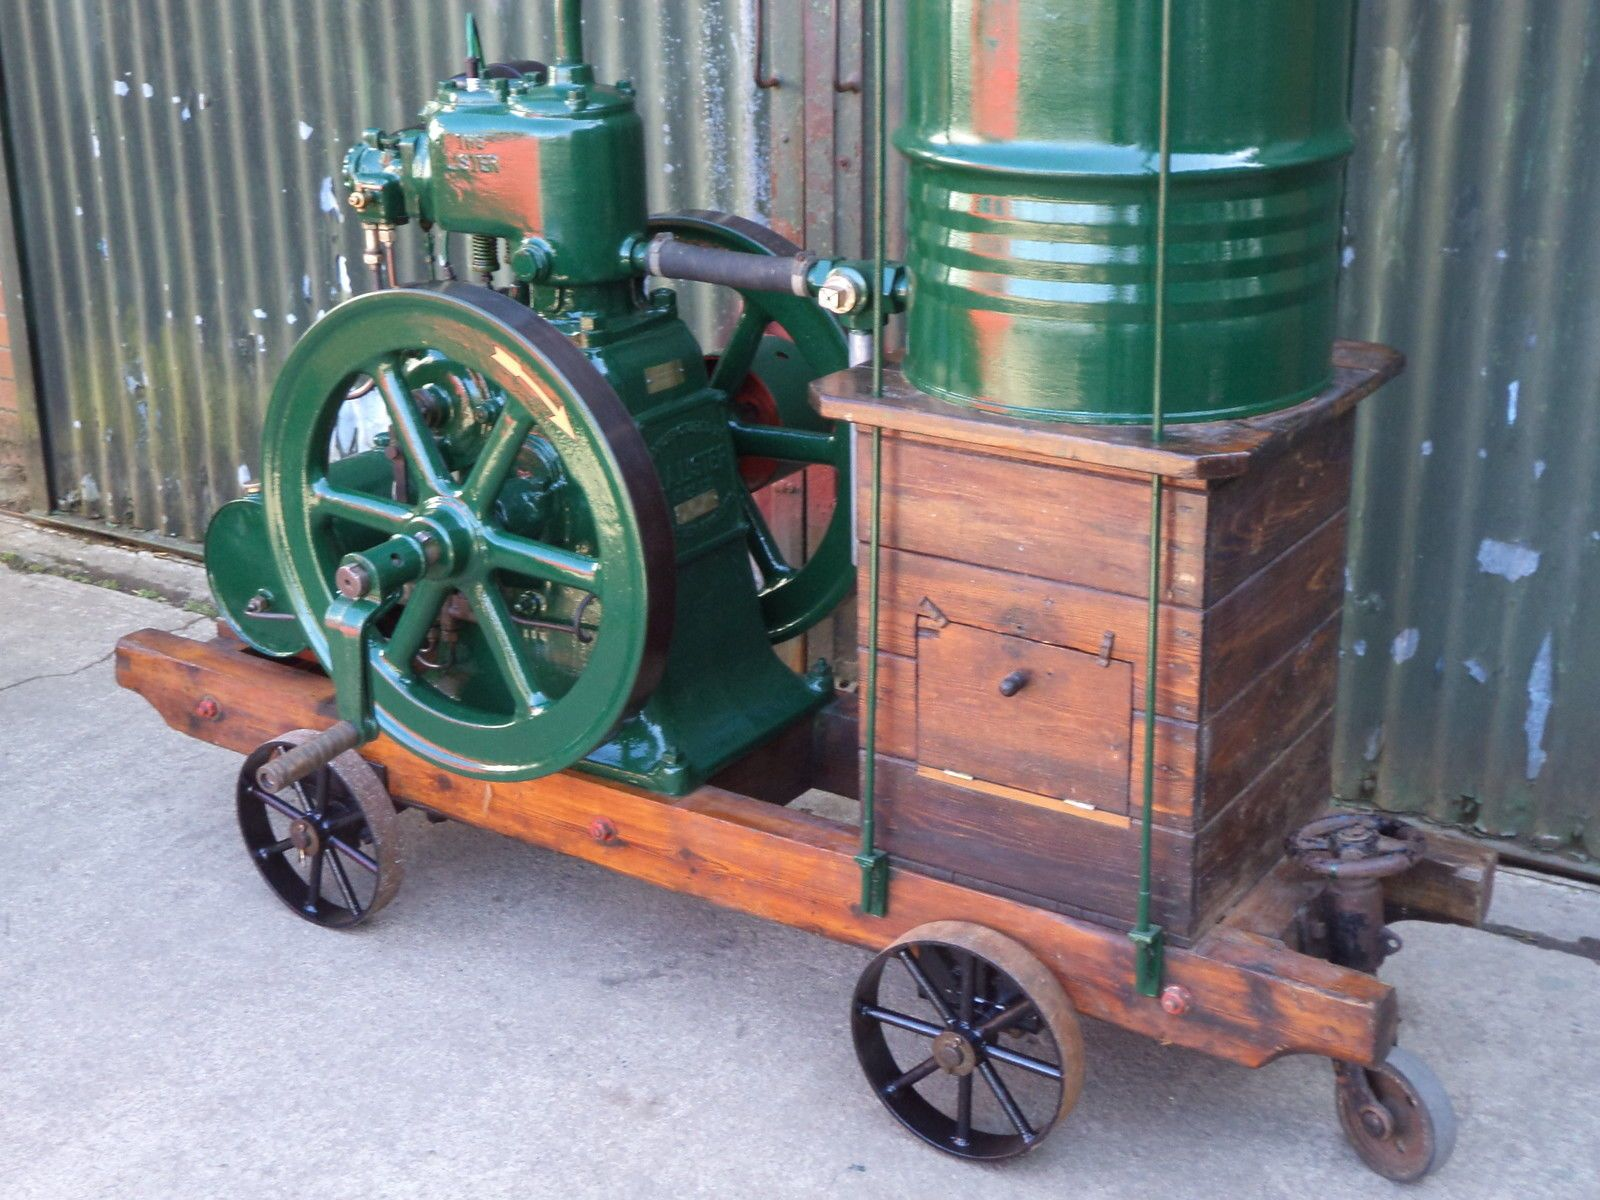 Lister j series 2.5 hp stationary engine.mounted on wooden